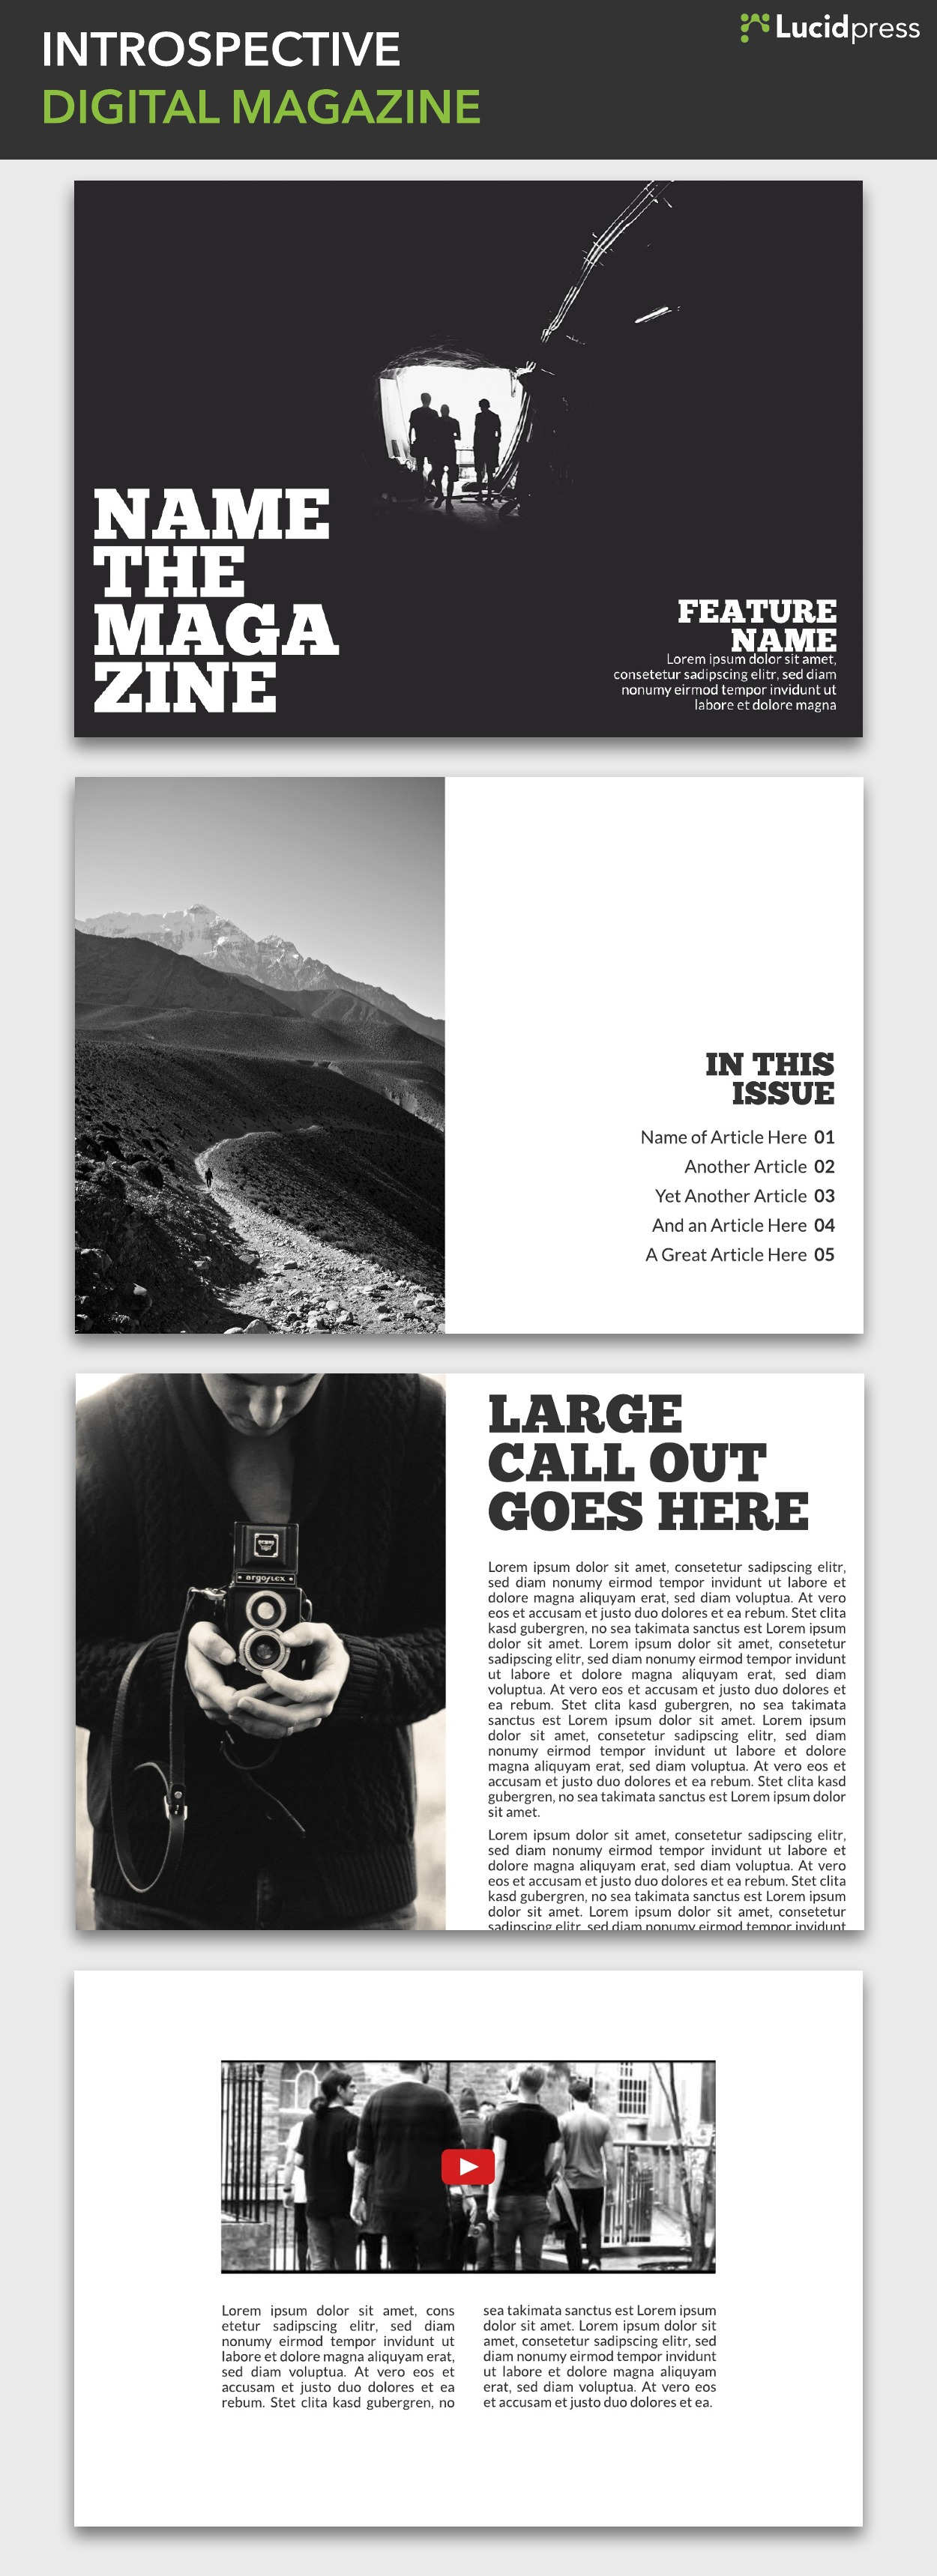 Introspective Digital Magazine Inspiration